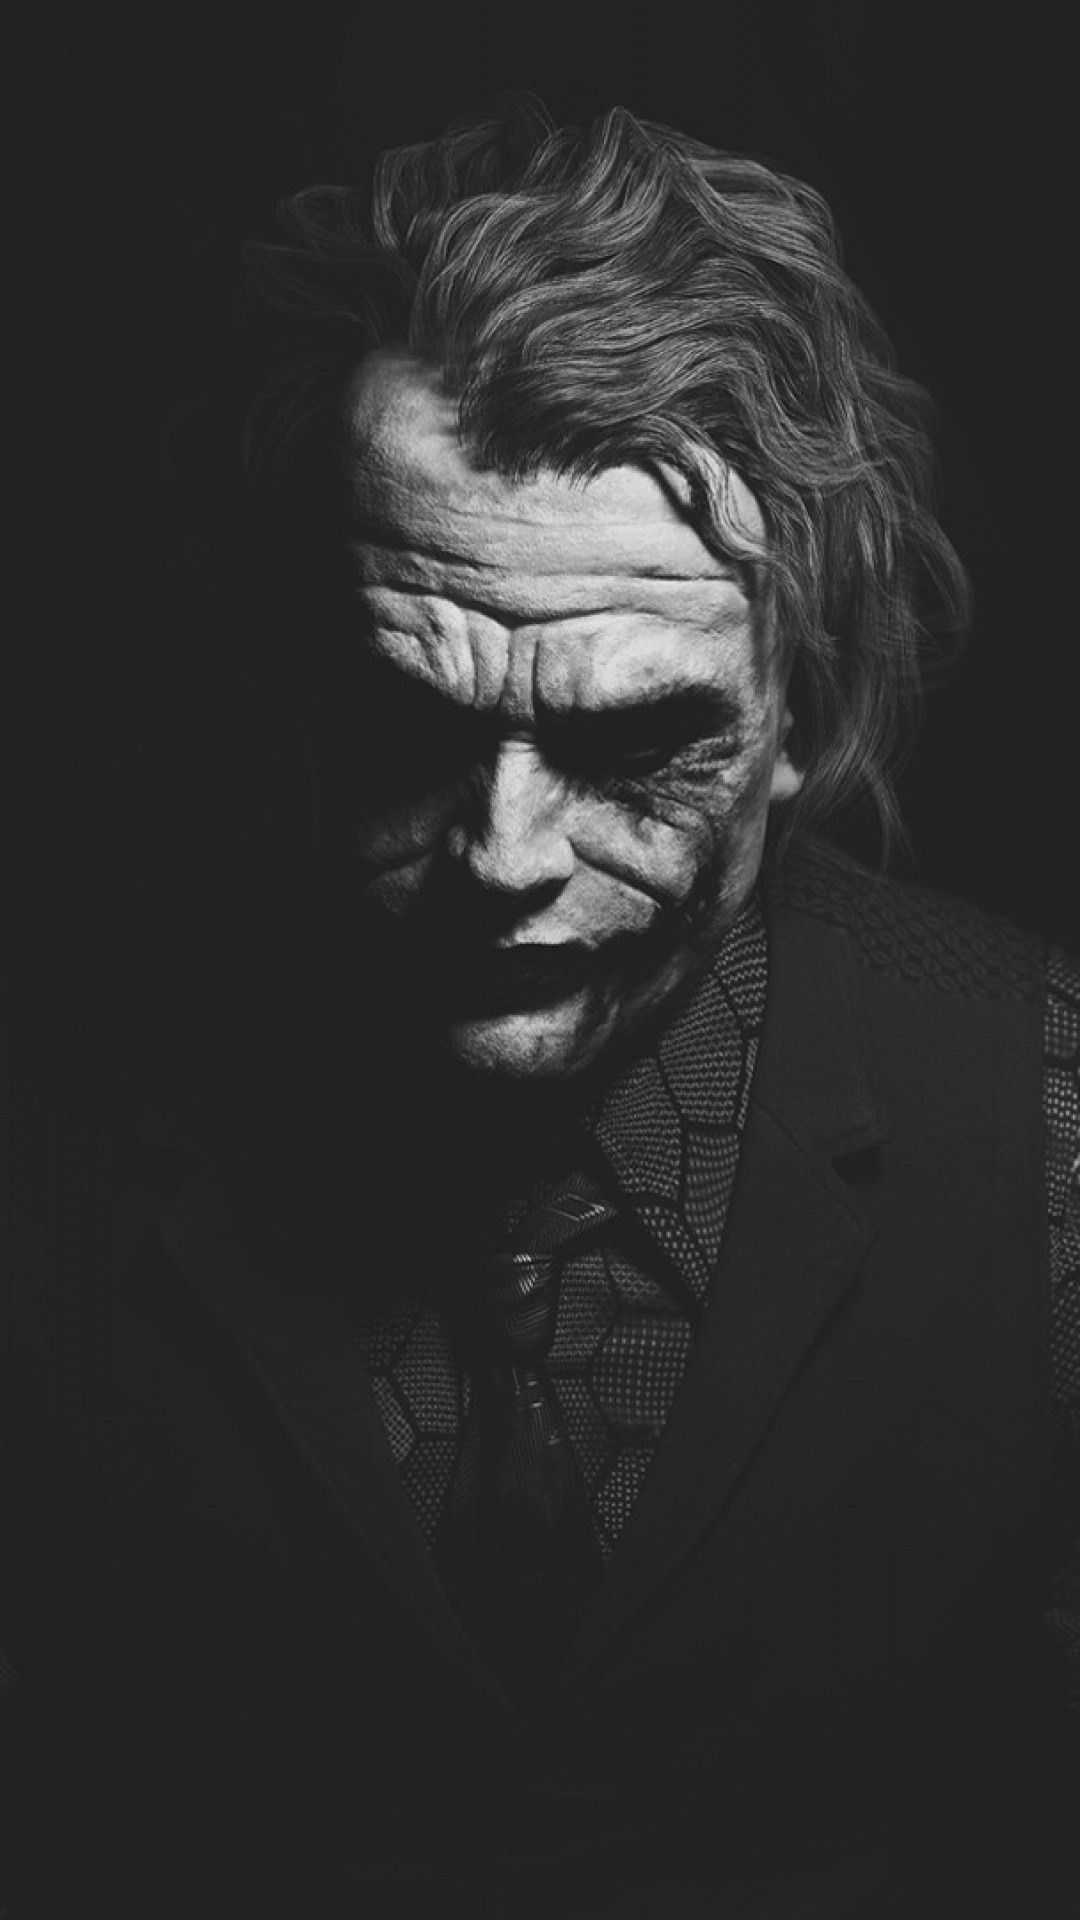 1080x1920 1080x1920 heath ledger joker monochrome batman joker hd